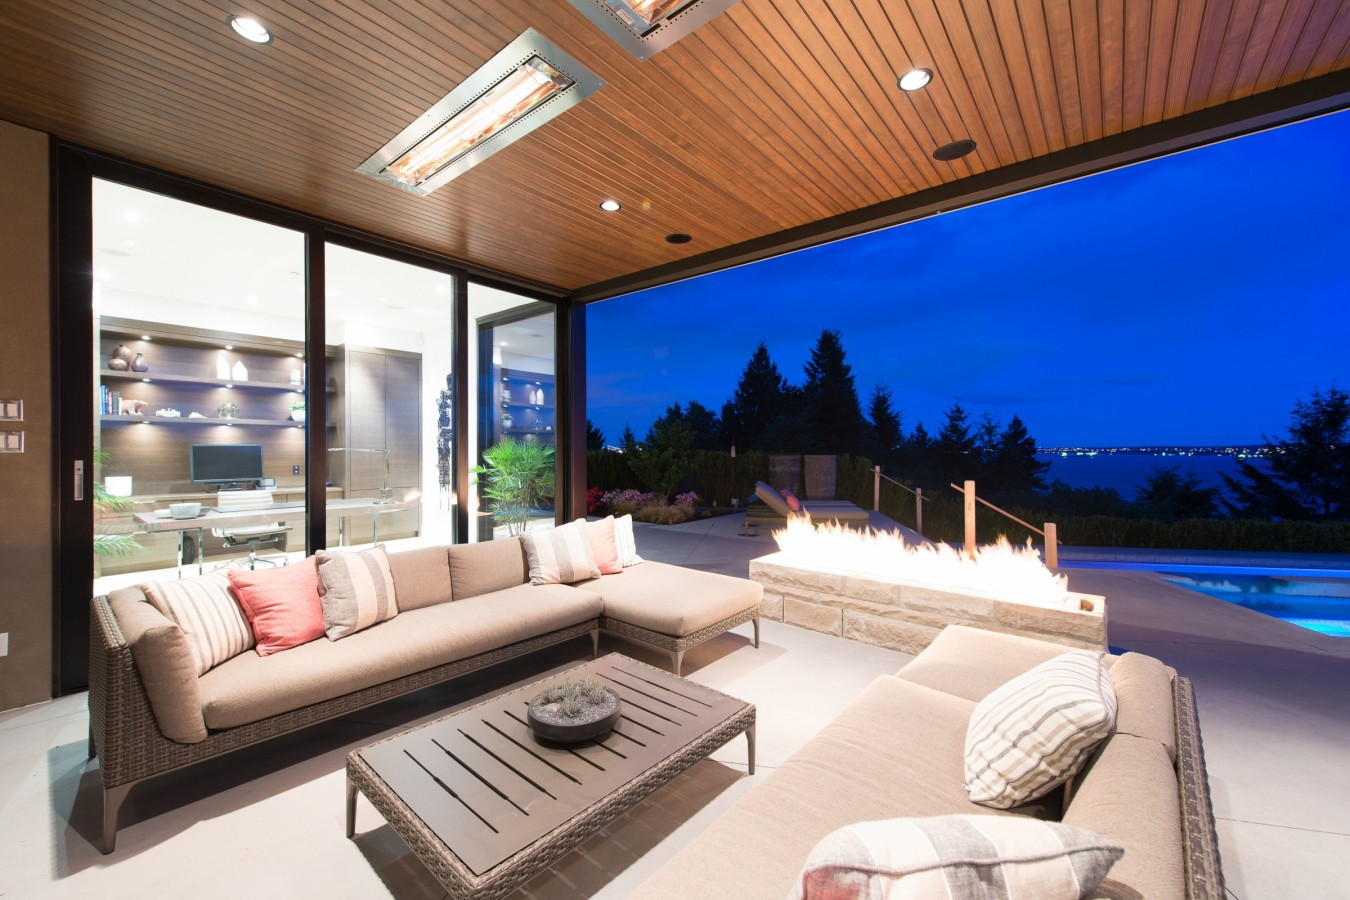 Stylish Private Residence In West Vancouver Canada Homedezen - Burkehill residence canada